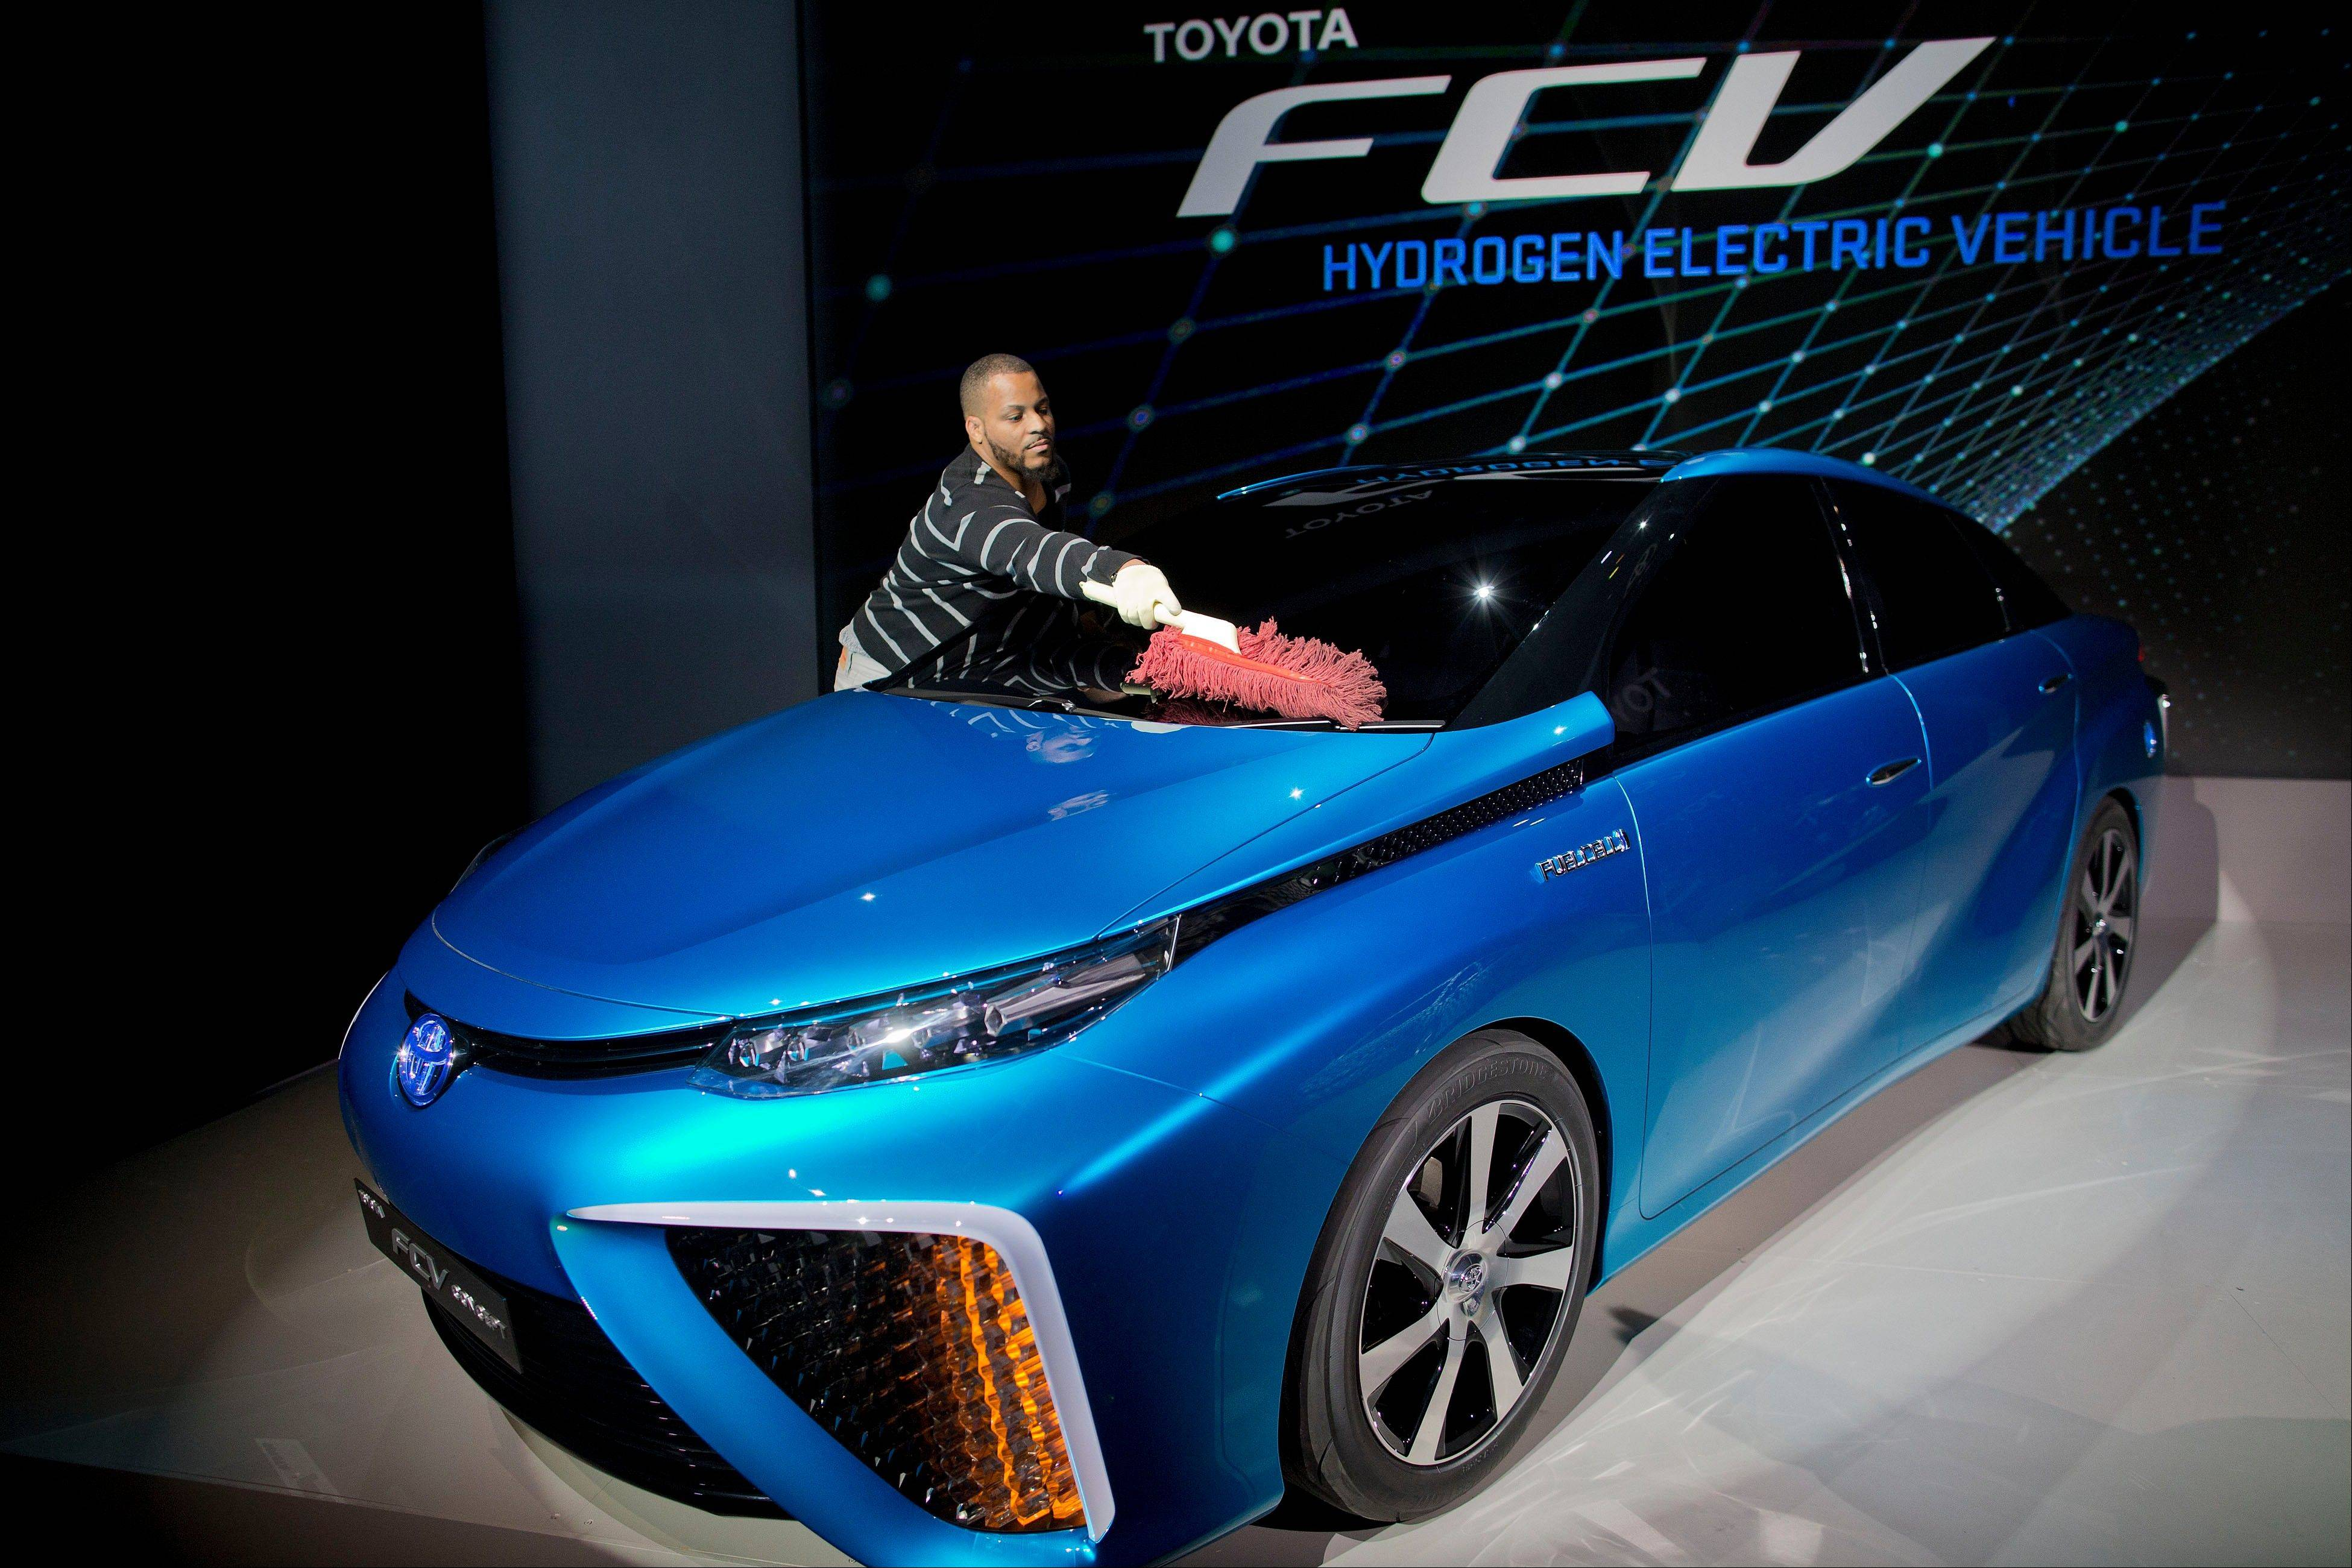 A production crew member dusts off Toyota's FCV hydrogen electric concept car during the International Consumer Electronics Show in Las Vegas. Toyota announced the car would be available to consumers in 2015.